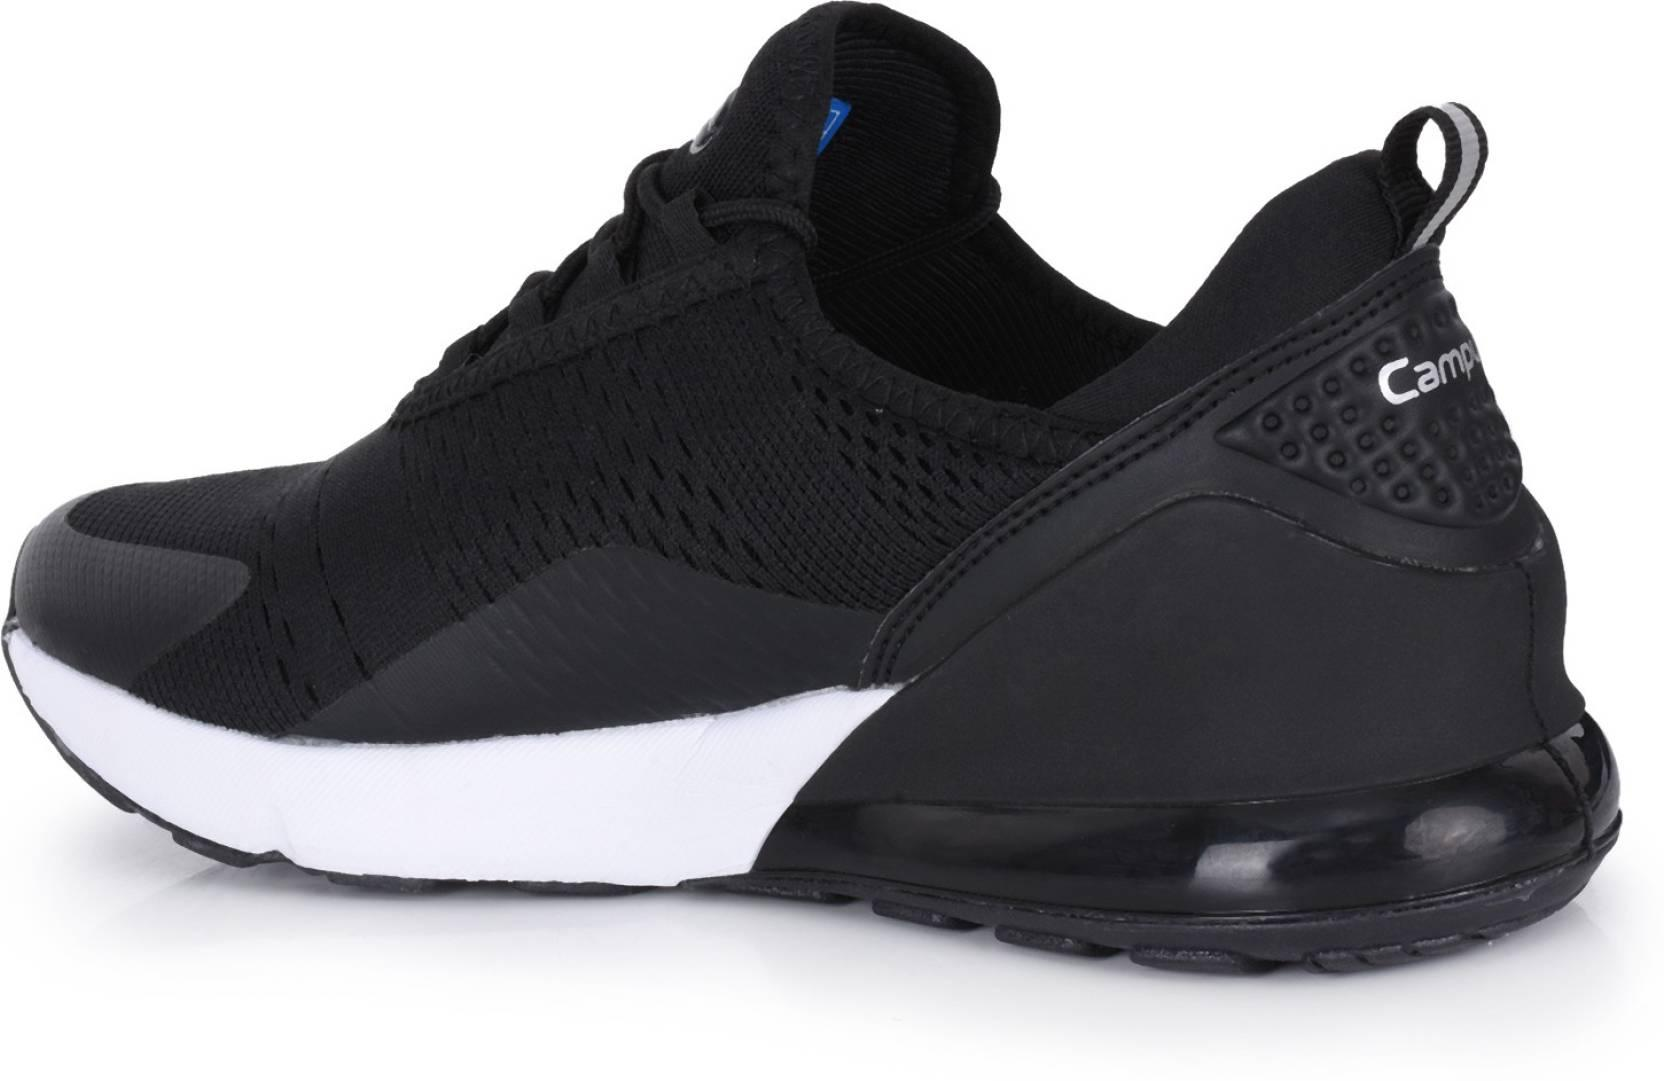 Expensive Campus Shoes in India